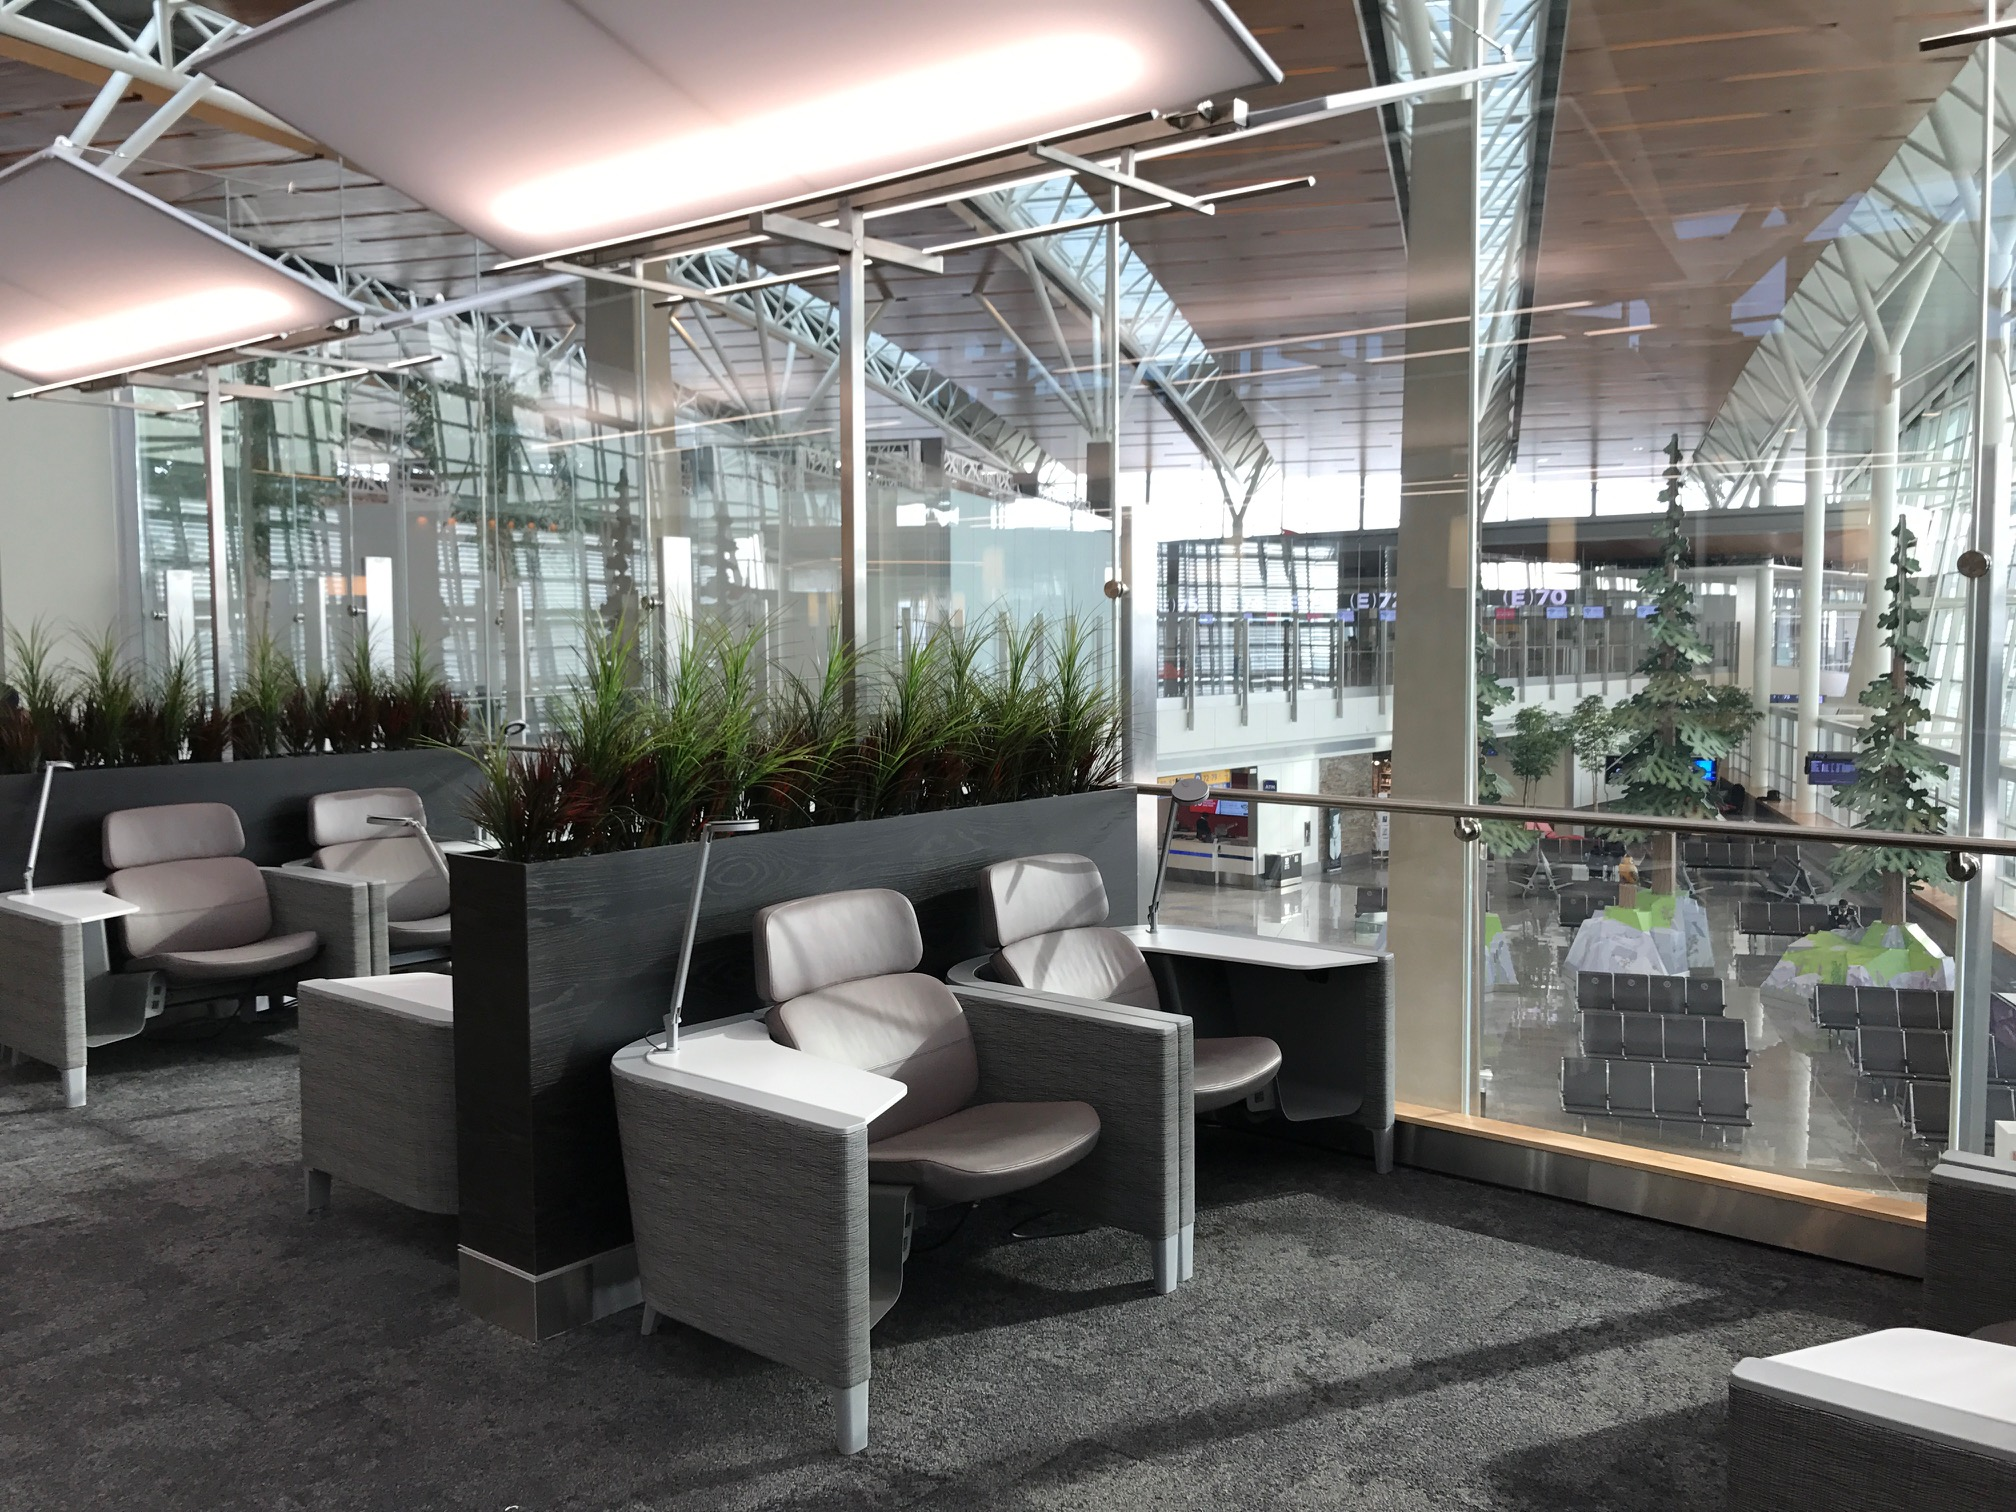 Rewards Canada's Guide to Business Class Lounge Access